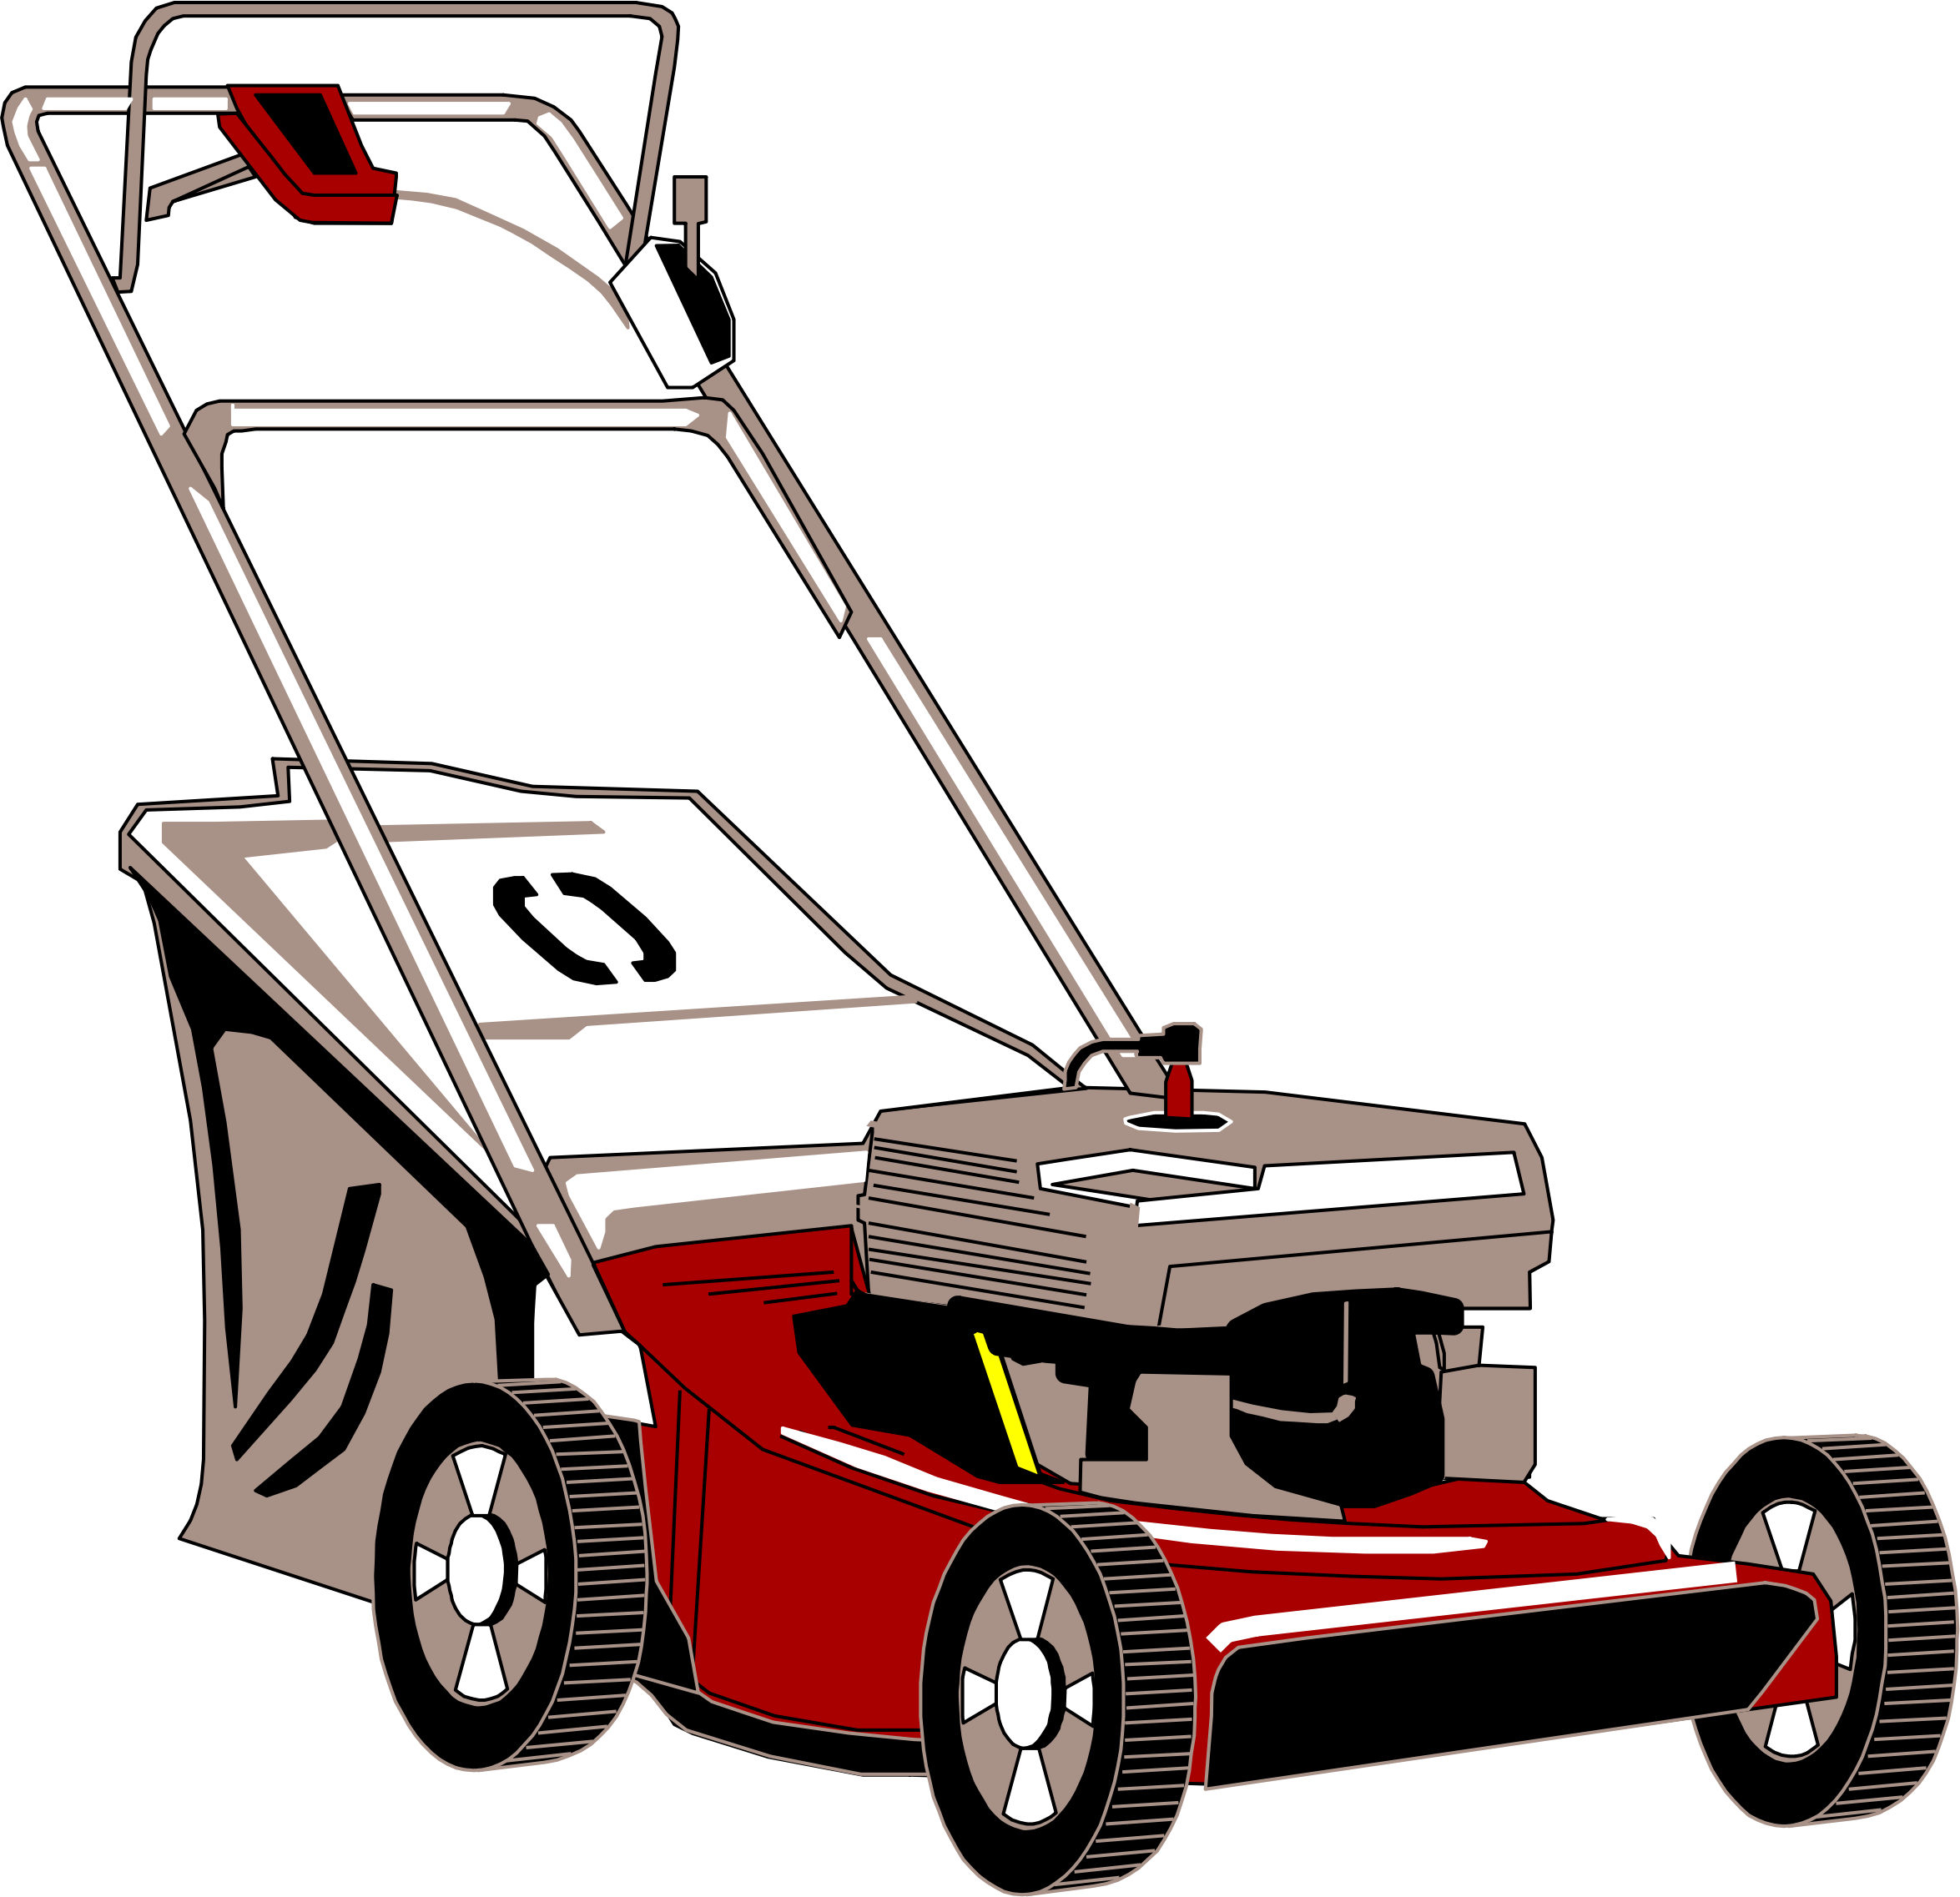 free download Lawnmower clipart. With bagger big image